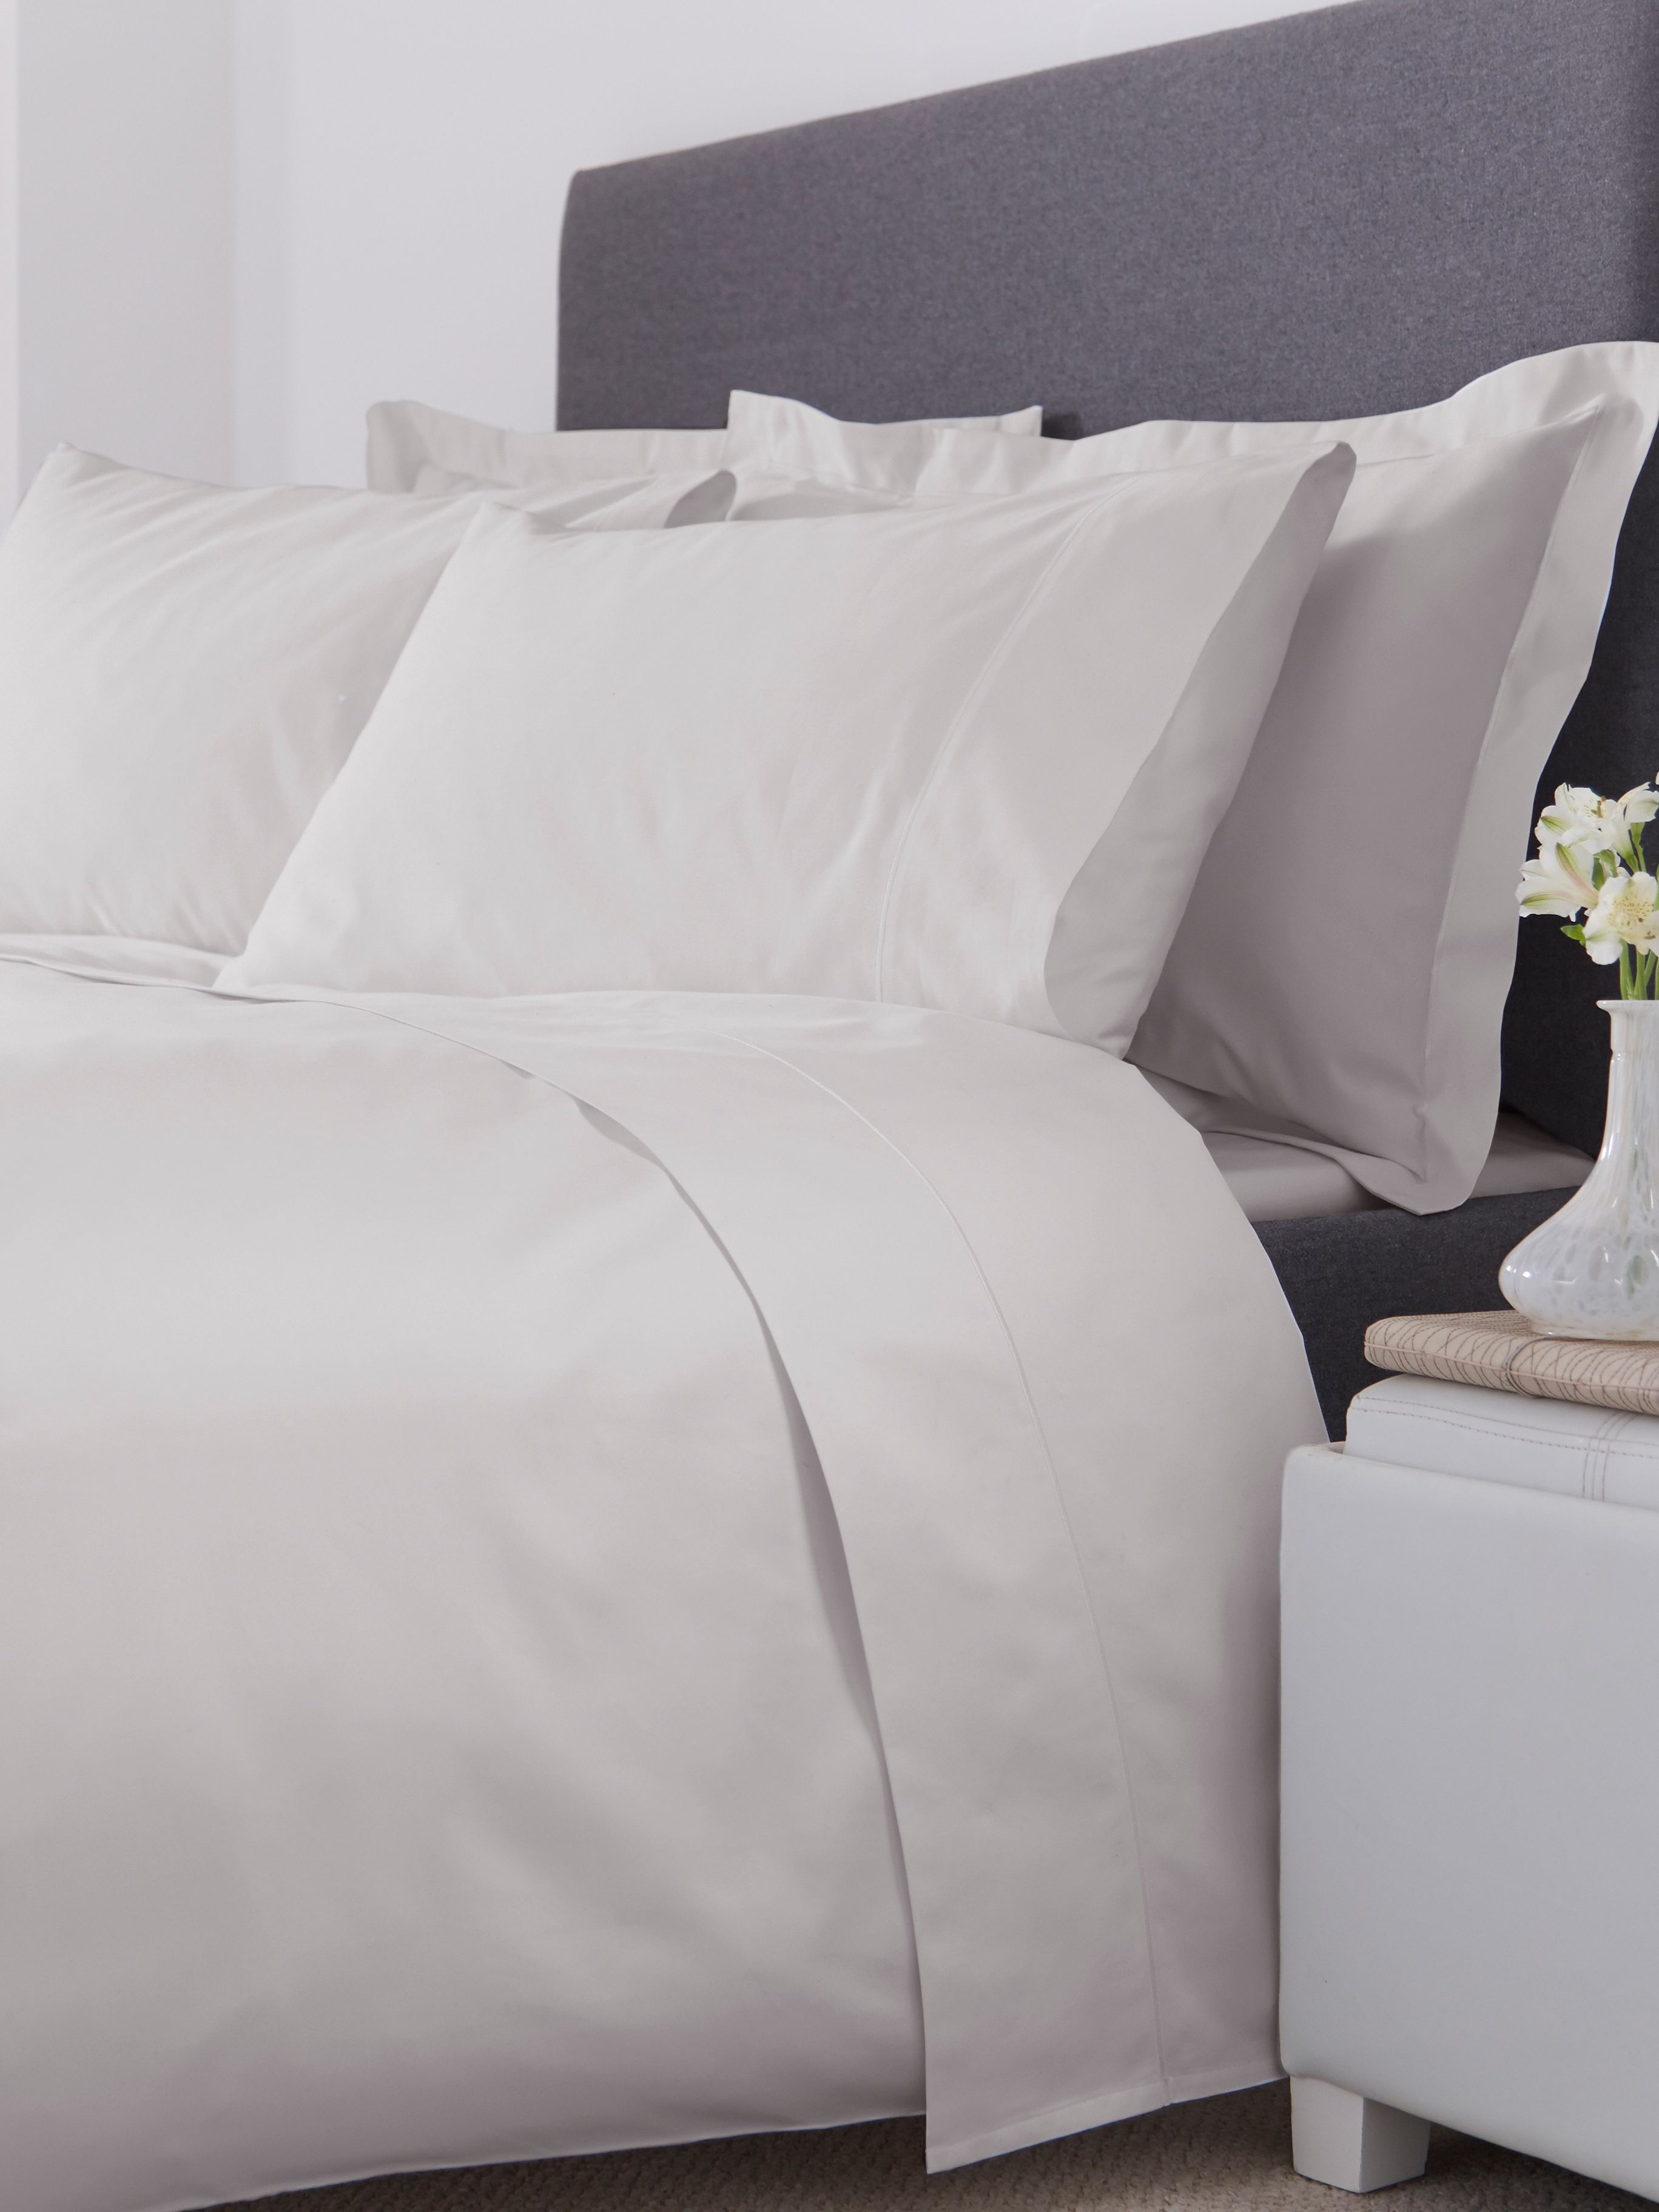 800 thread count king duvet cover set moonbeam